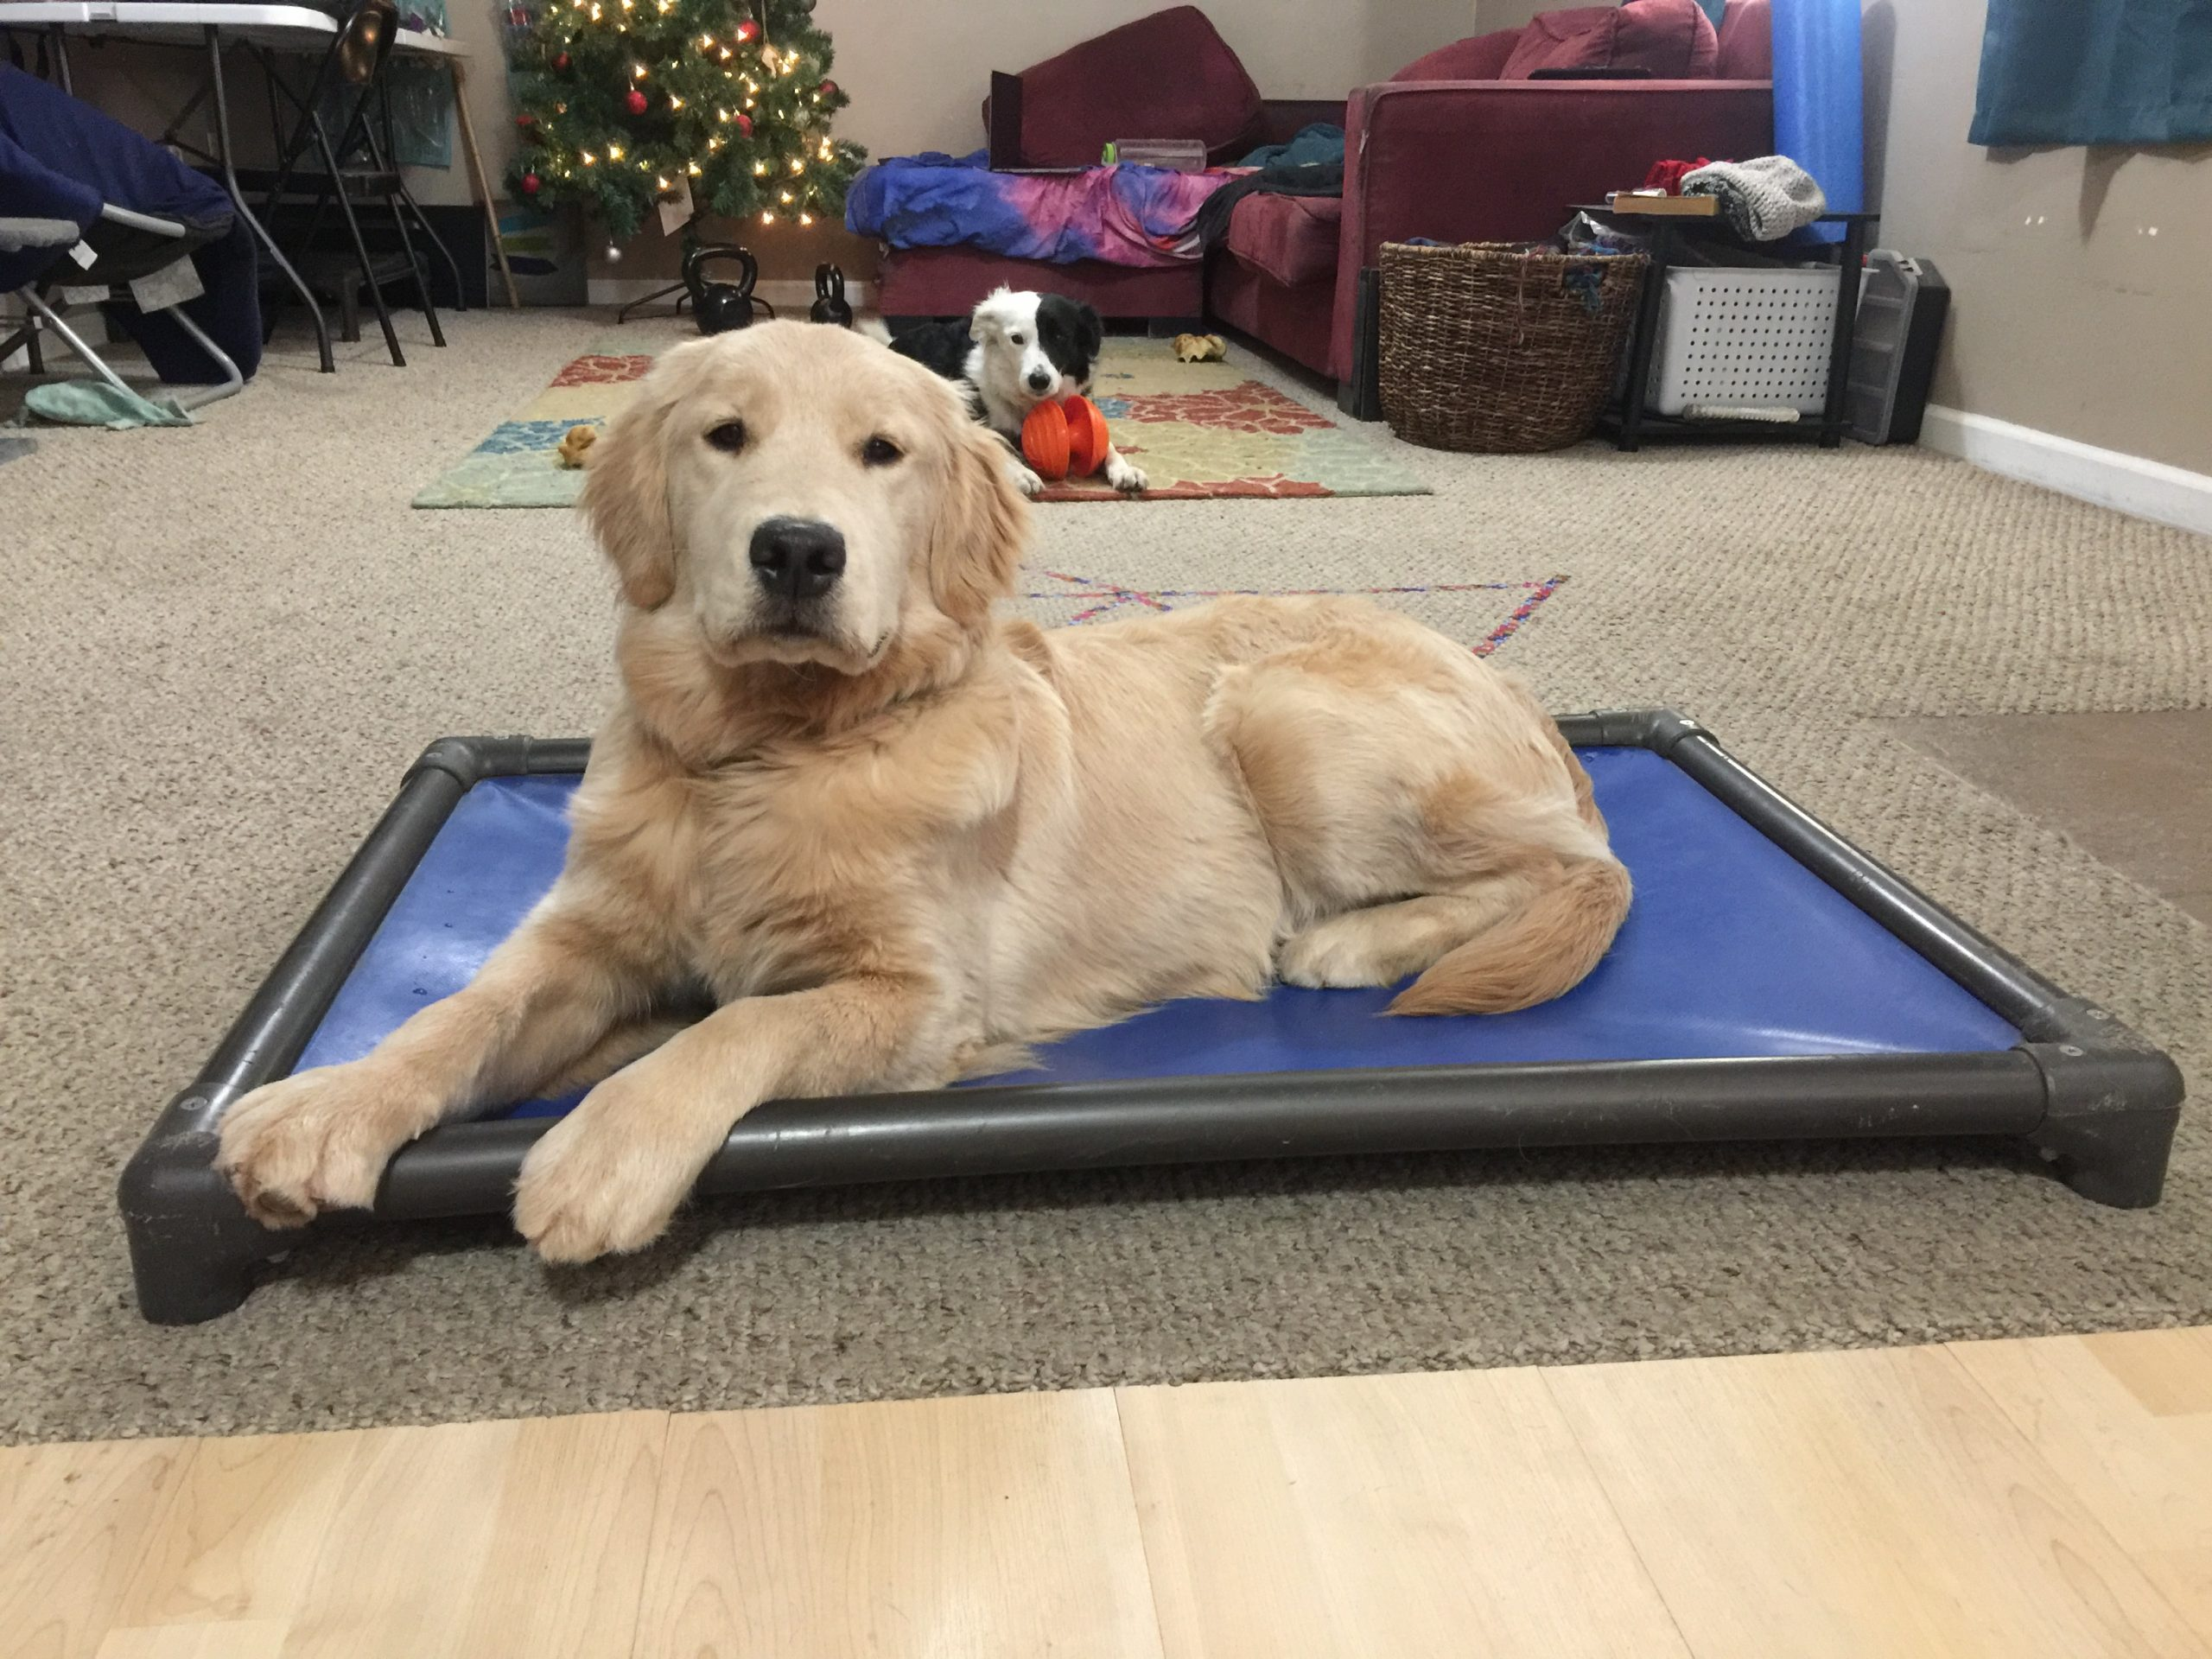 Stationing in Dog Training for Service Dogs